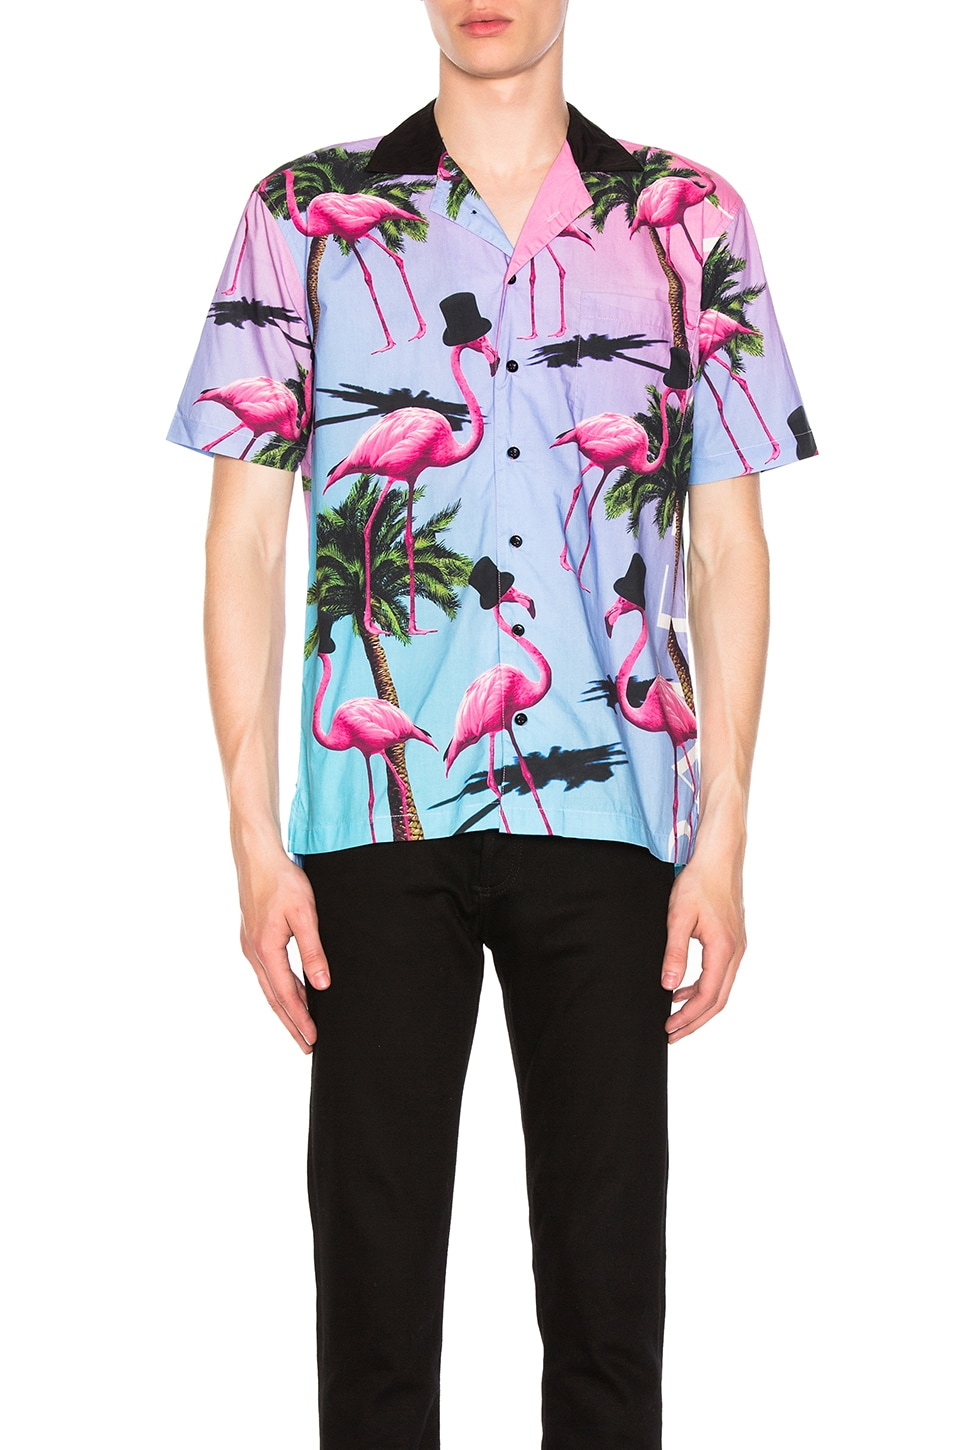 Resort Bowling Shirt by Paterson